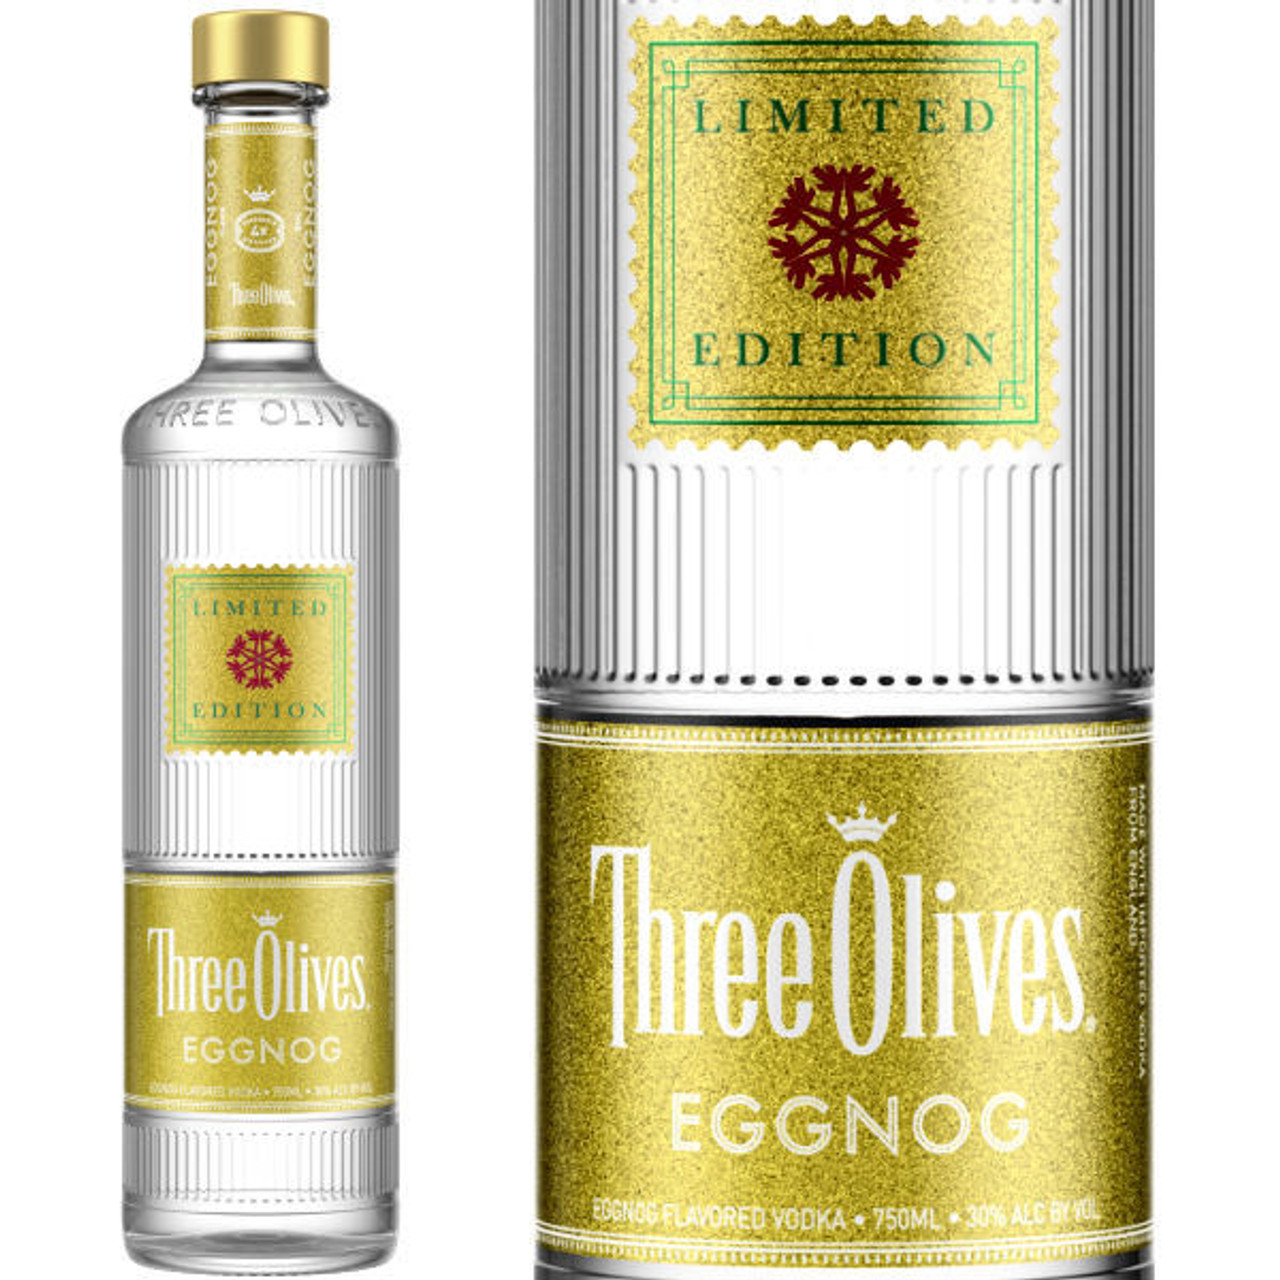 Three Olives Limited Edition Egg Nog Vodka 750ml